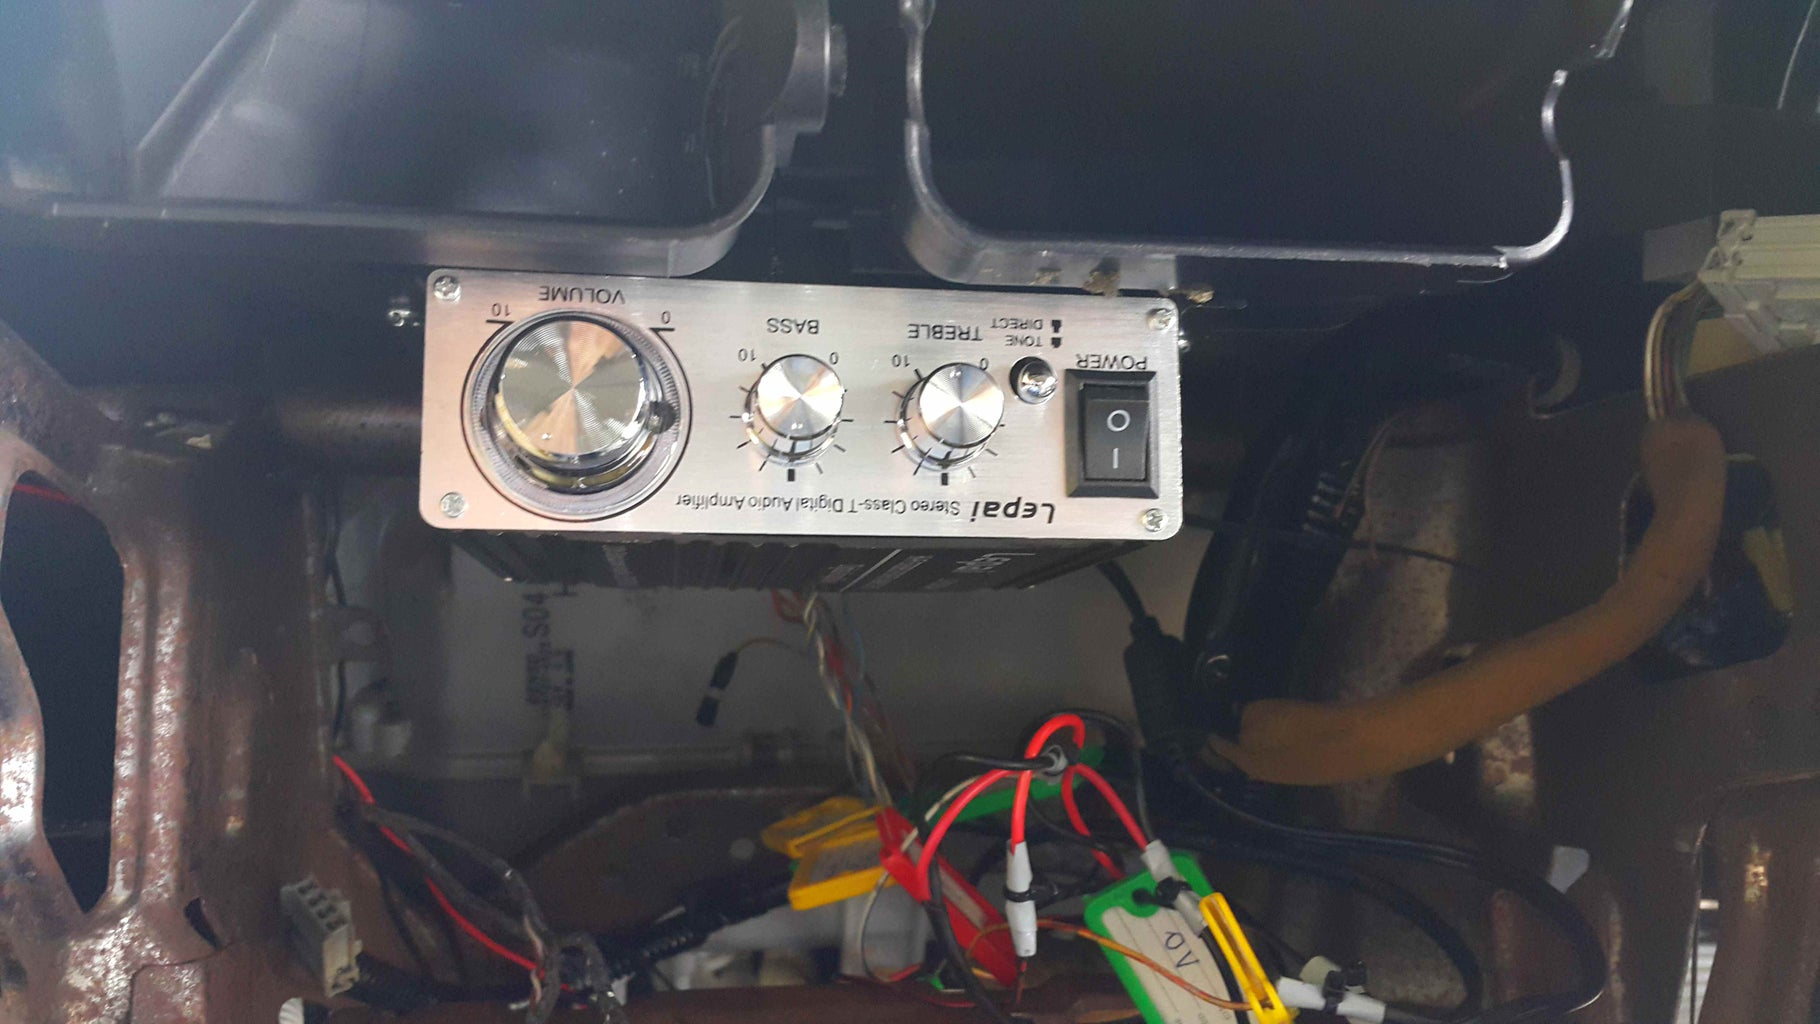 Wiring and Securing the Lepai.